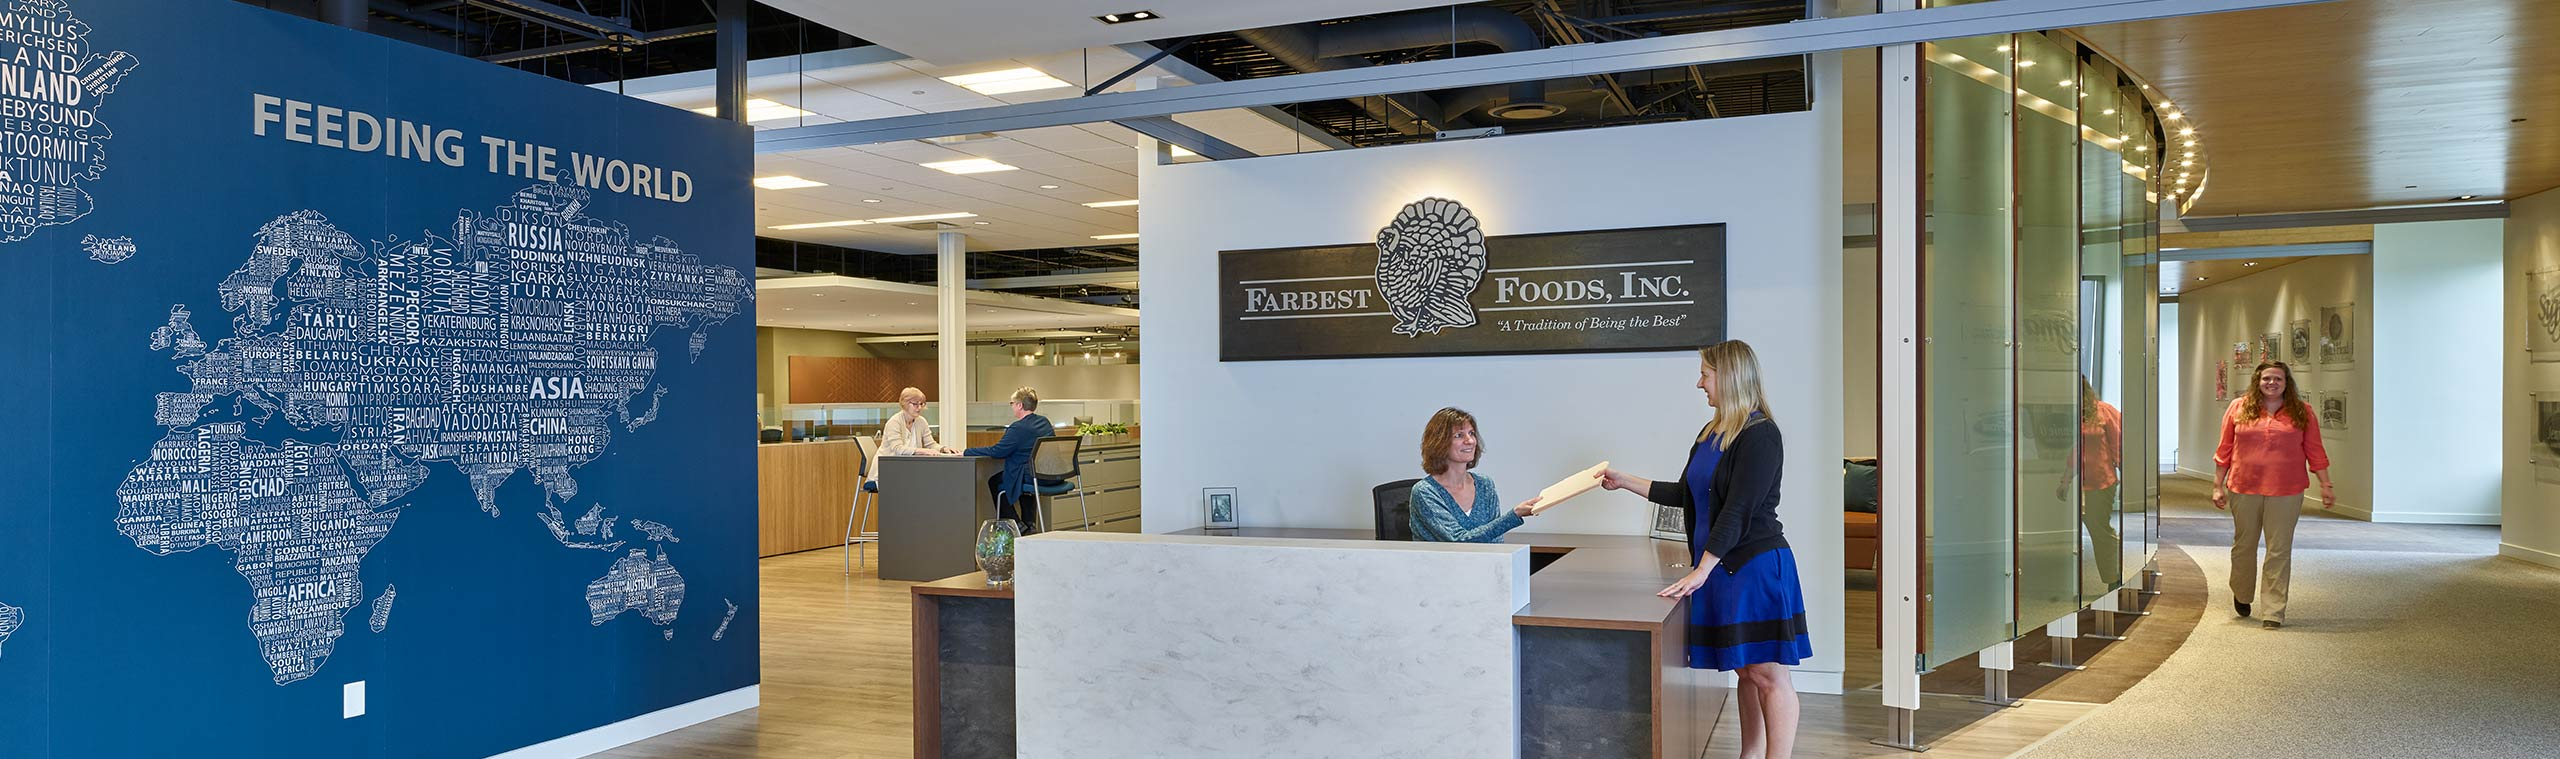 Farbest Foods Mission